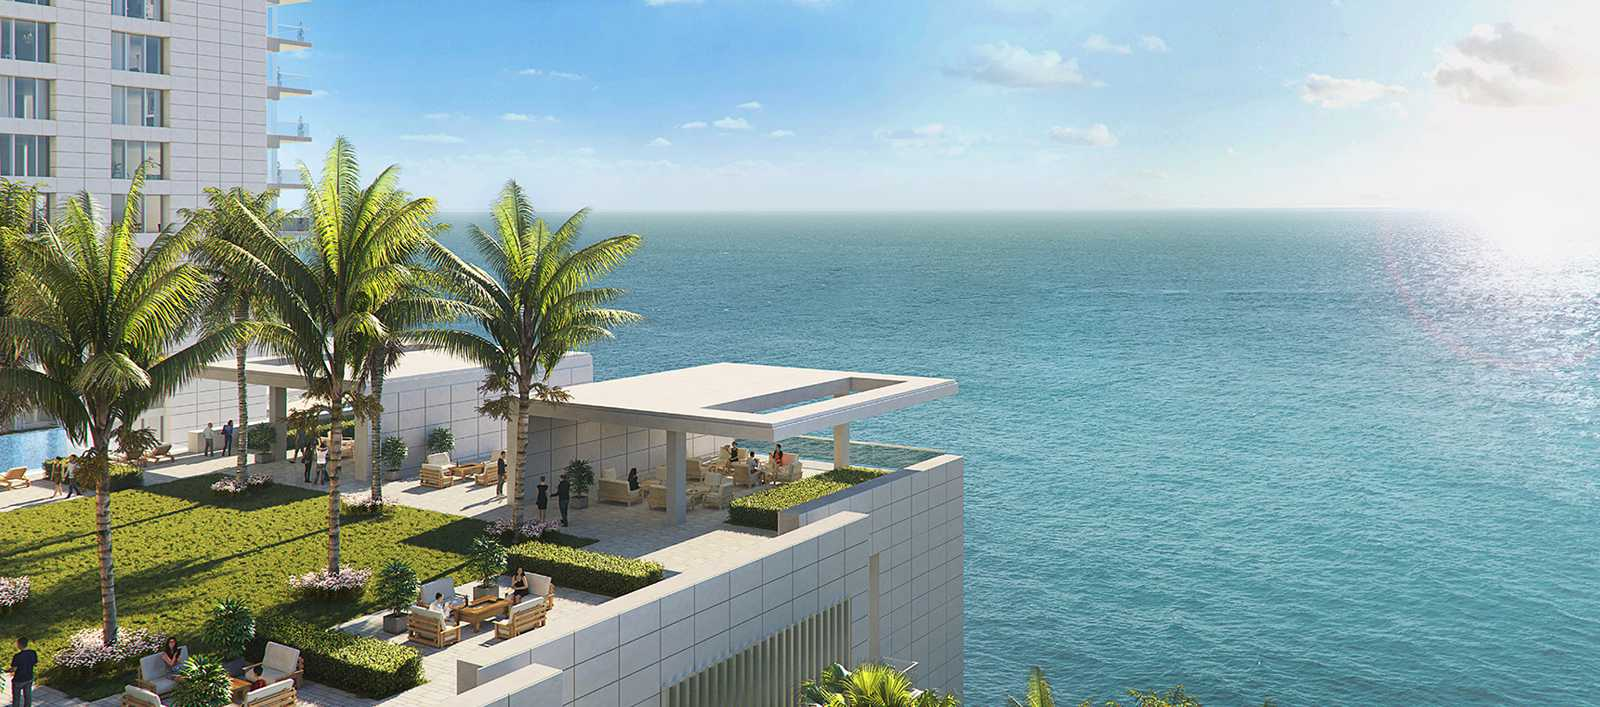 panorama residences images